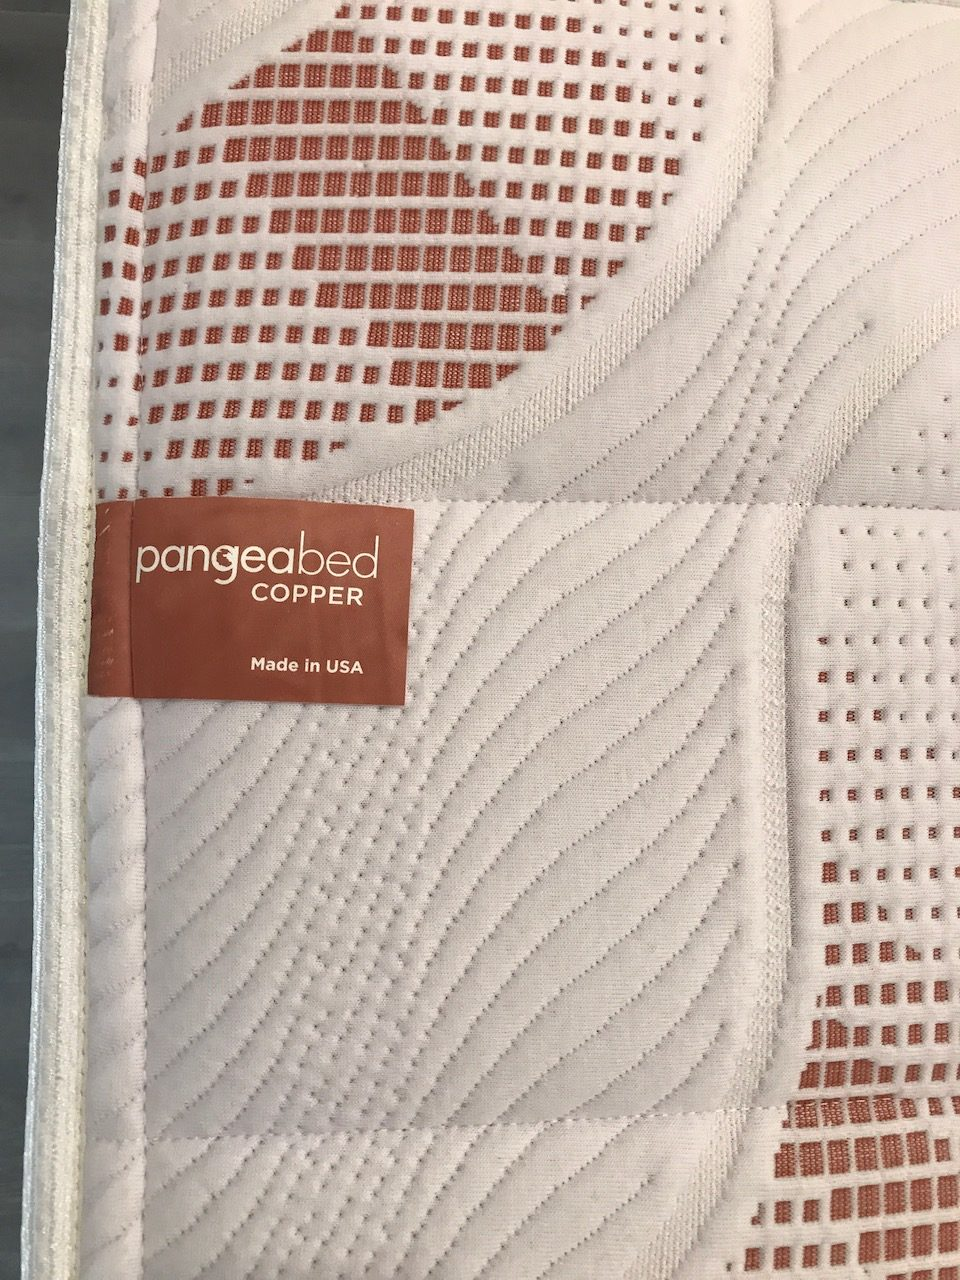 Pangea says its copper layer offers antimicrobial, antibacterial, hypoallergenic benefits